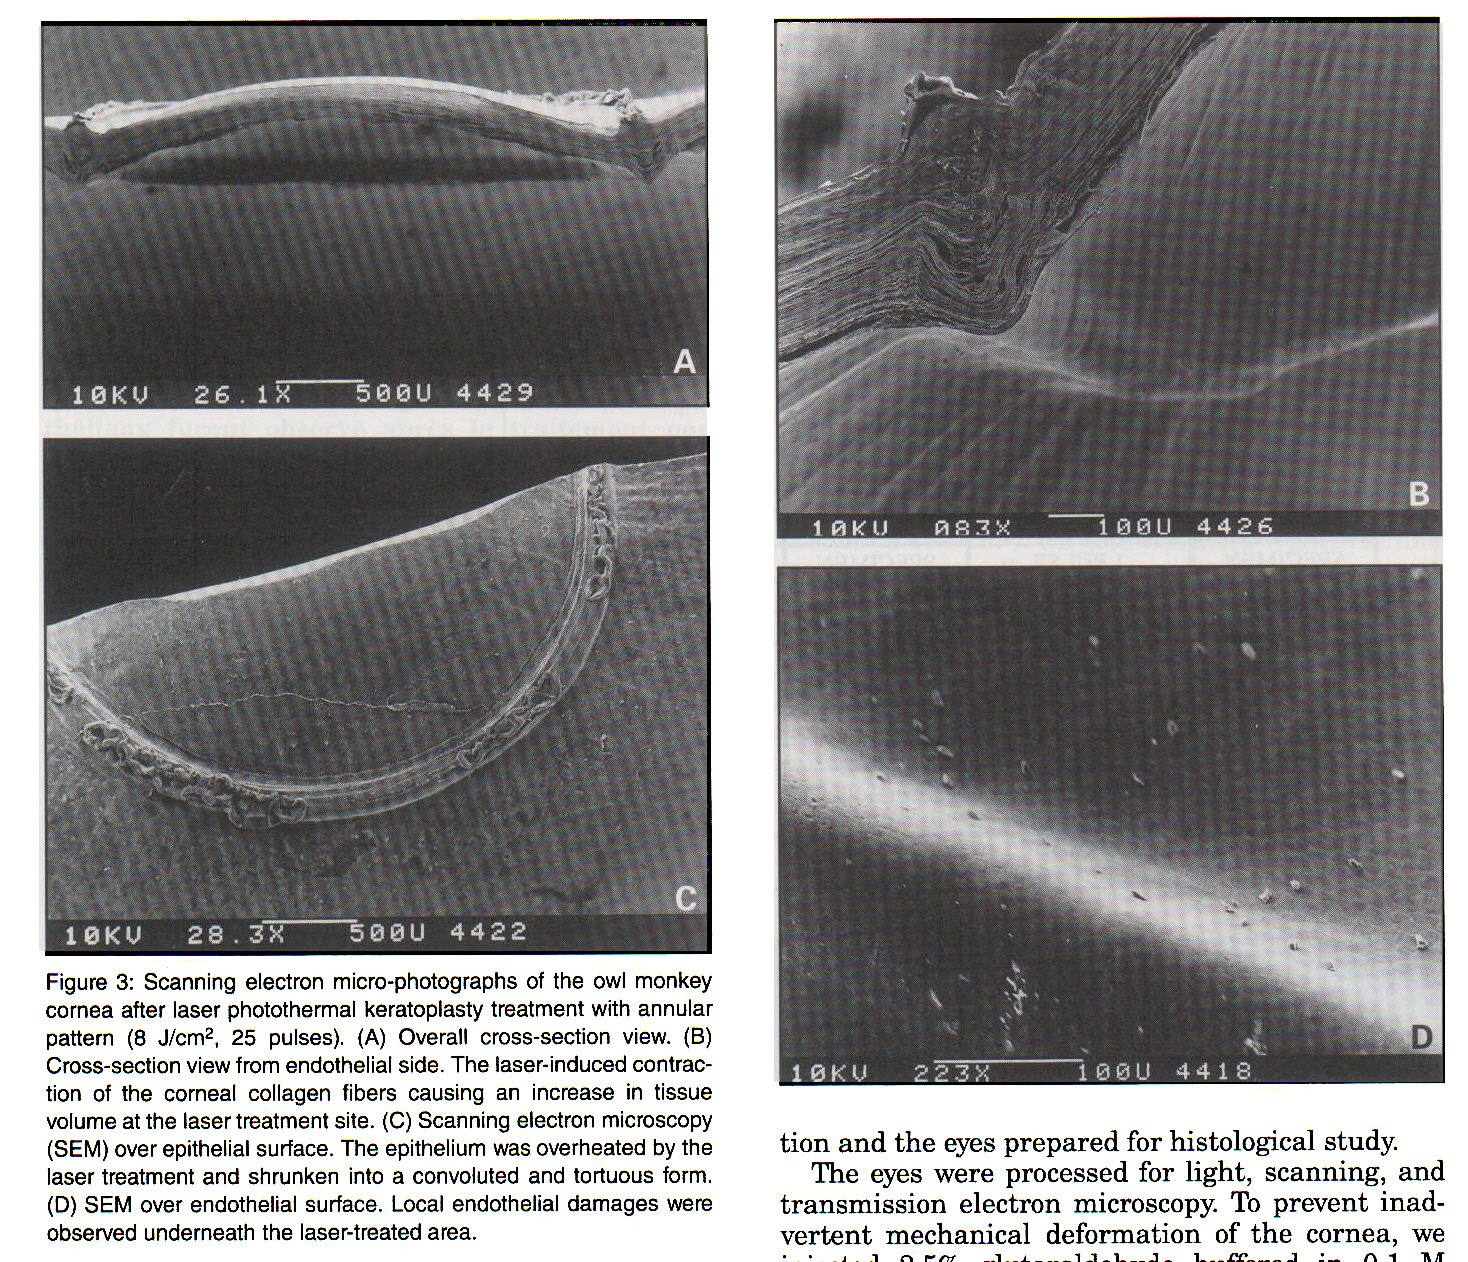 Figure 3: Scanning electron micro-photographs of the owl monkey cornea after laser photothermal keratoplasty treatment with annular pattern (8 J/cmp 2, 25 pulses), (A) Overall cross-section view. (B) Cross-section view from endothelial side. The laser-induced contraction of the corneal collagen fibers causing an Increase in tissue volume at the laser treatment site. (C) Scanning electron microscopy (SEM) over epithelial surface. The epithelium was overheated by the laser treatment and shrunken into a convoluted and tortuous form, (D) SEM over endothelial surface. Local endothelial damages were observed underneath the laser-treated area.